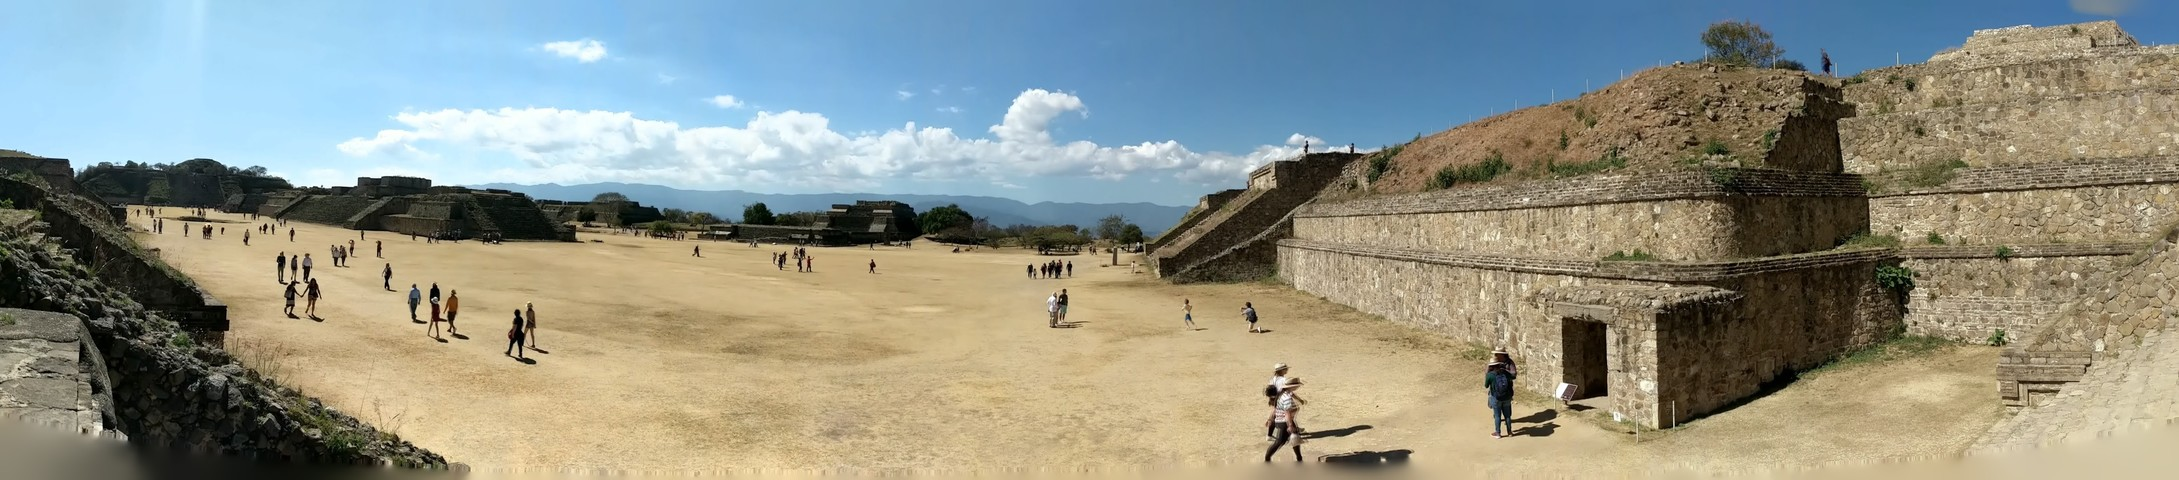 The ancient city of Monte Albán, capitol of the Zapotec civilization.